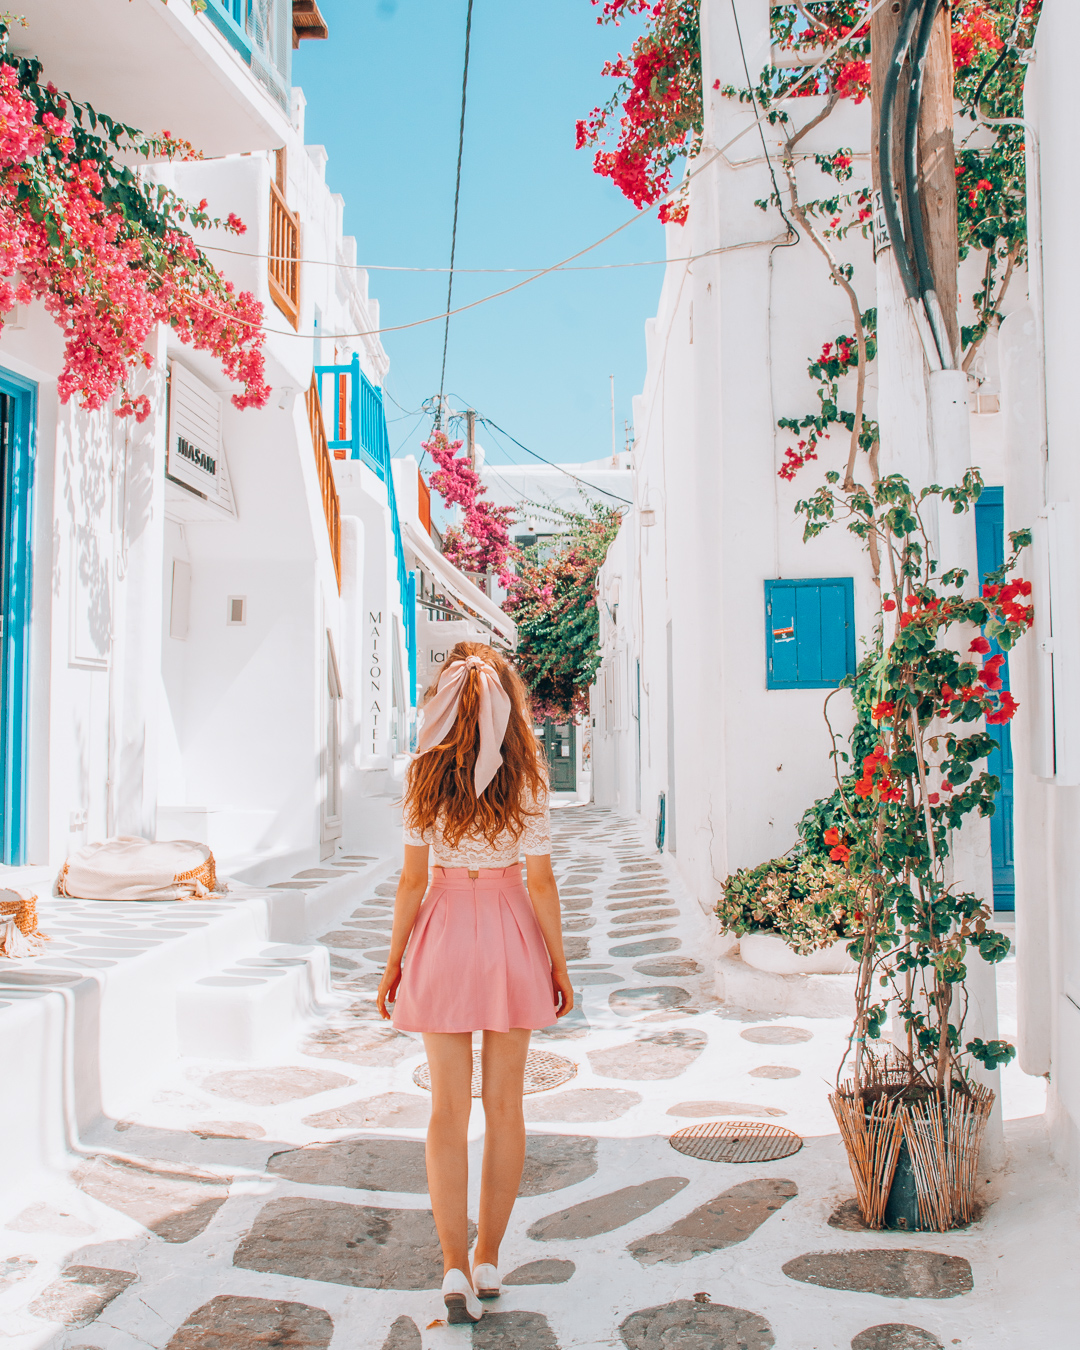 Girl in a colourful street with flowers in Mykonos